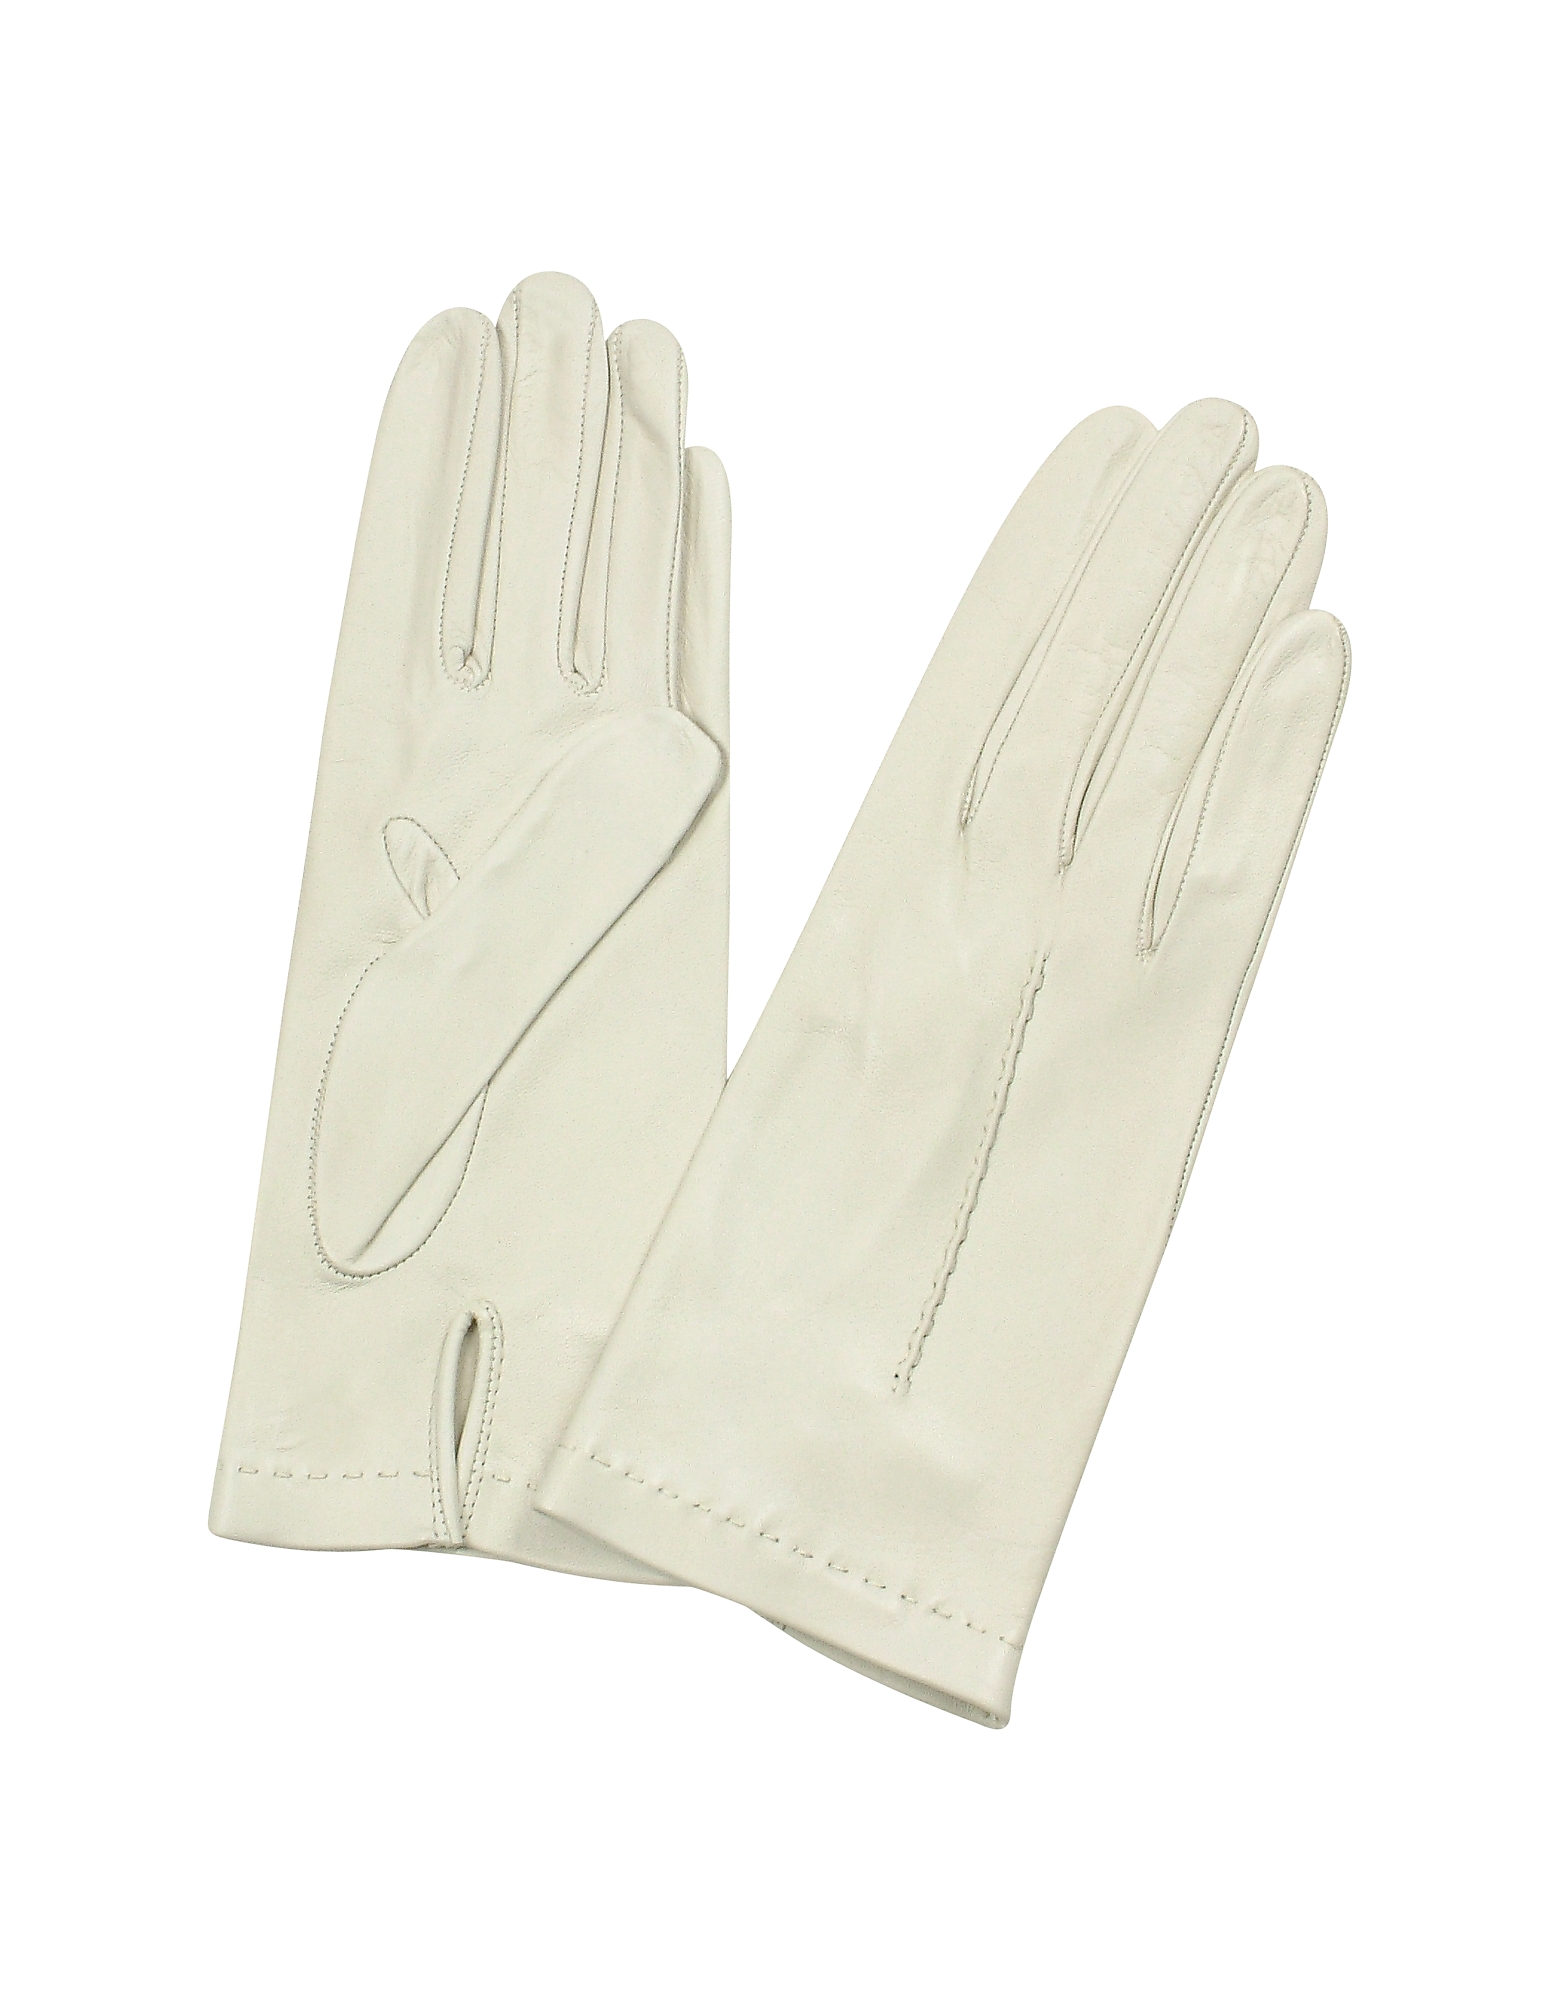 1940s Dresses and Clothing UK | 40s Shoes UK Forzieri Designer Womens Gloves Womens Ivory Unlined Italian Leather Gloves $161.00 AT vintagedancer.com